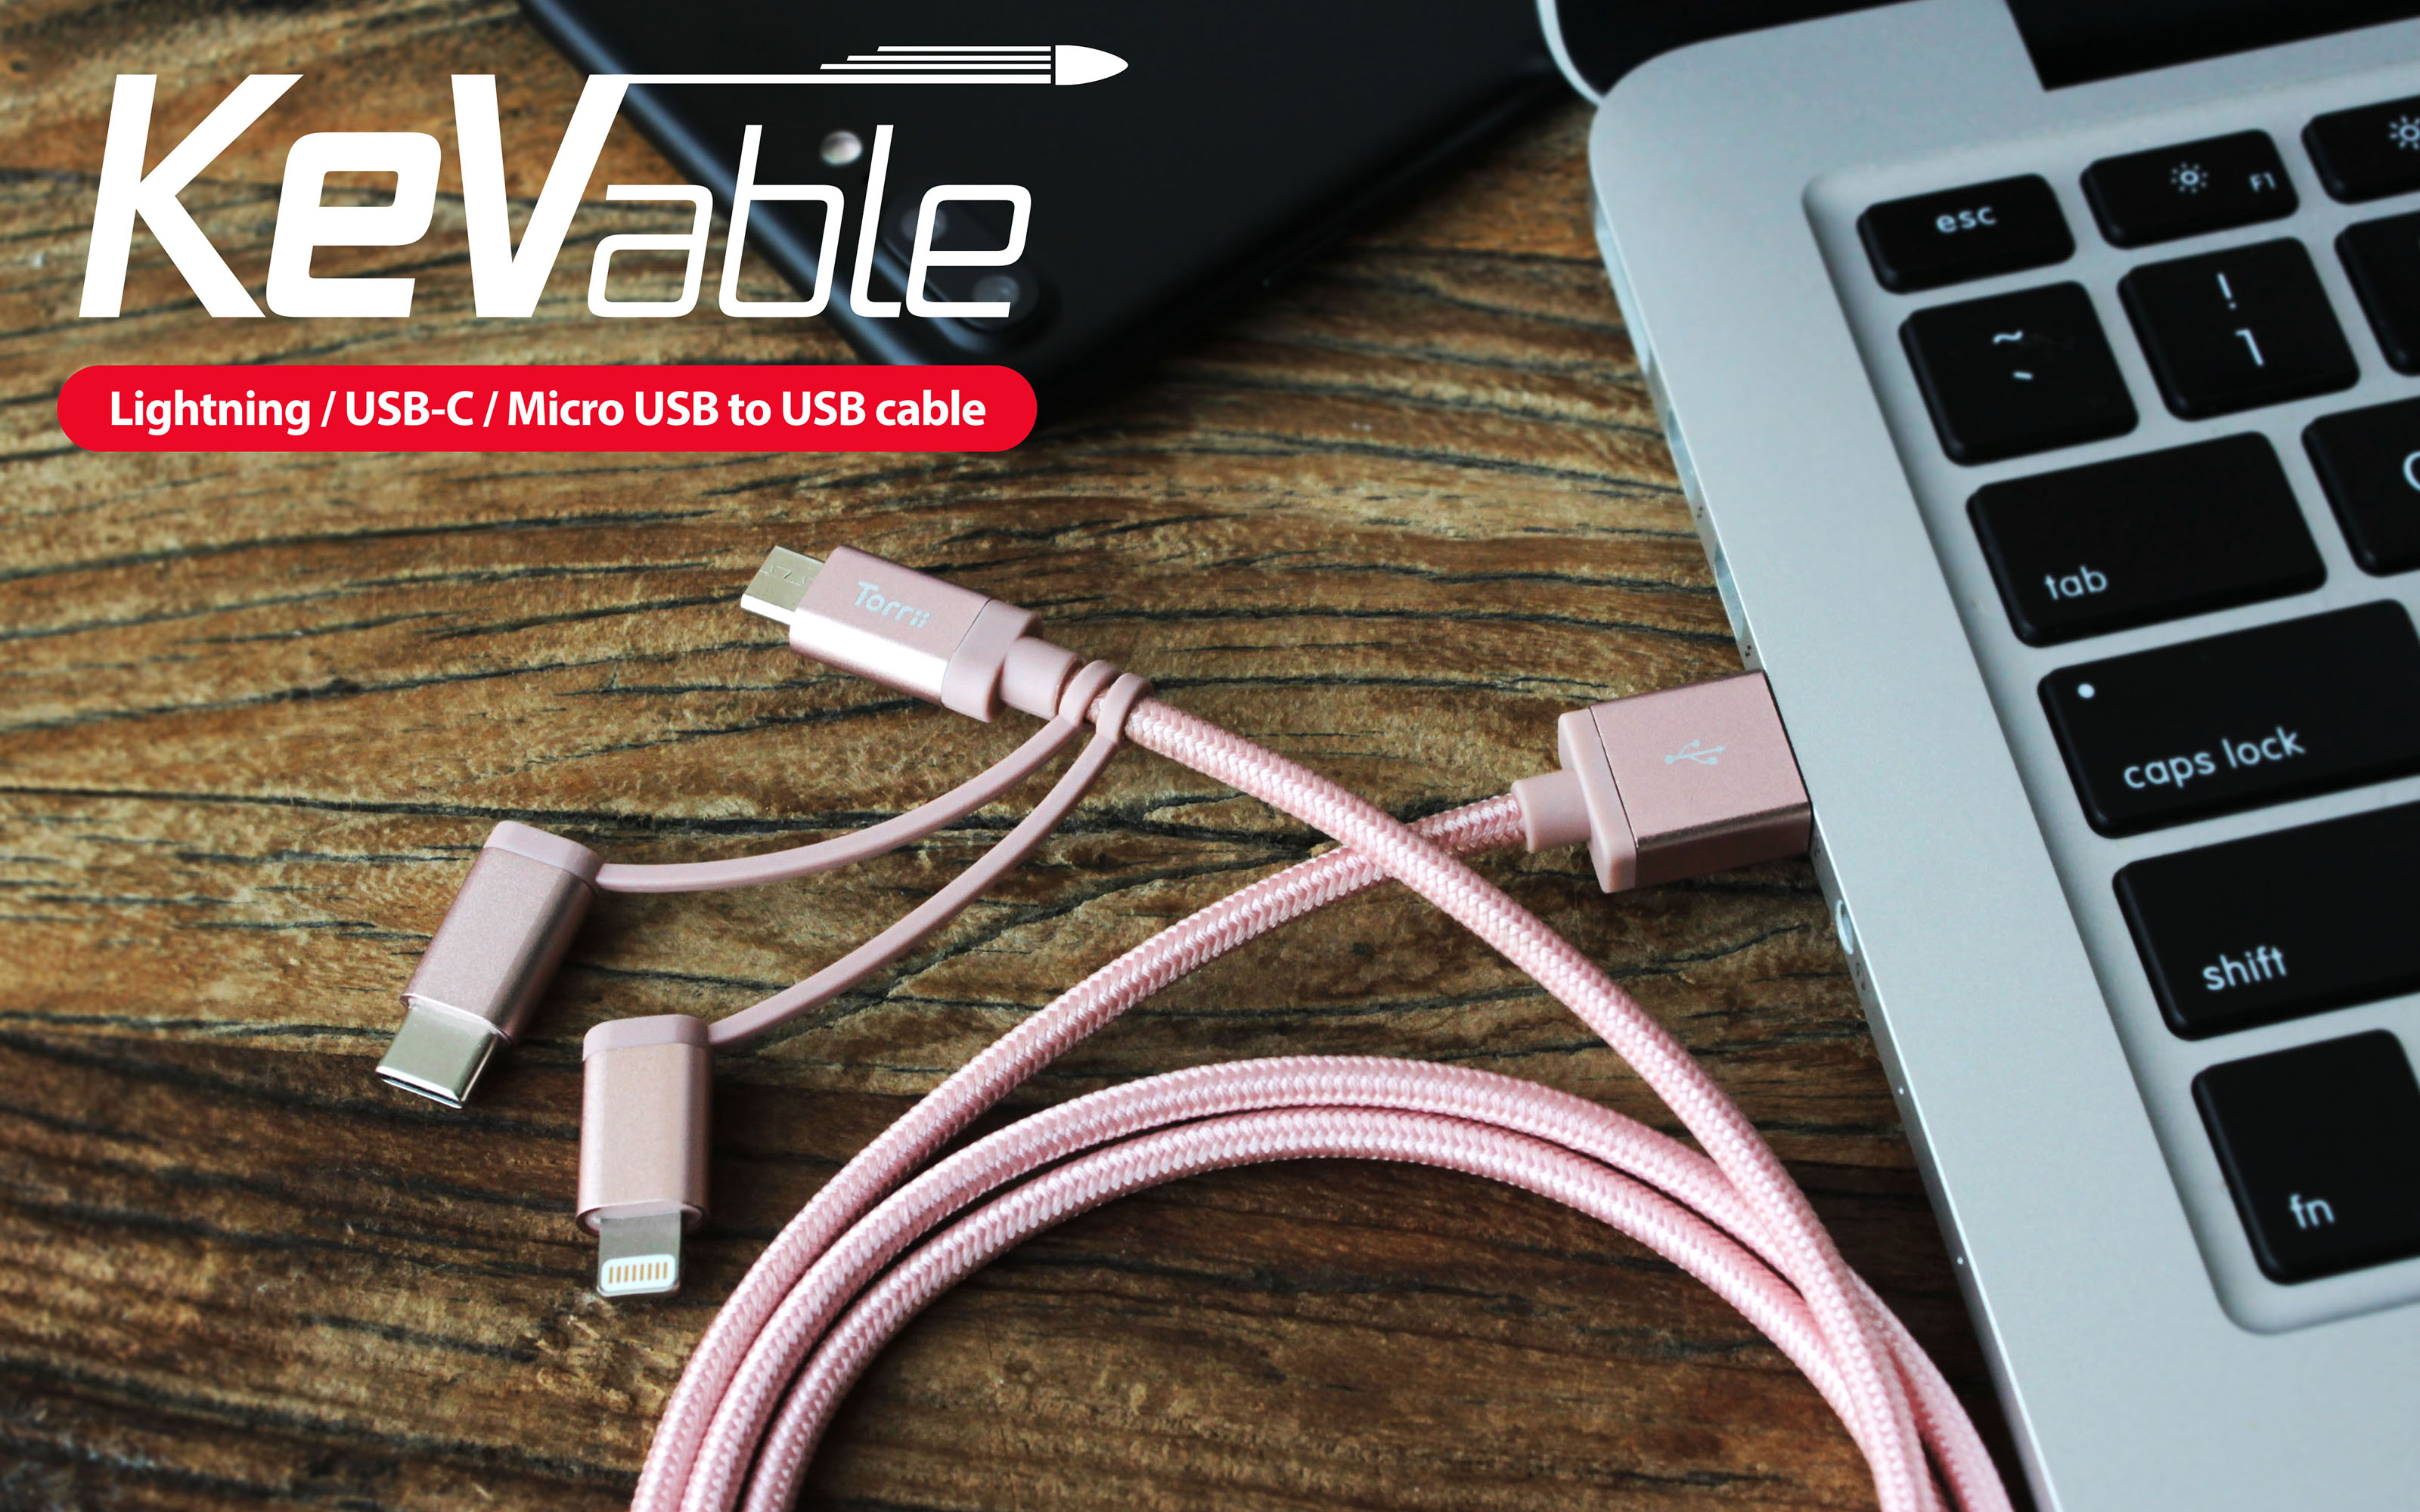 Torrii Introduces Kevable Premium Charge Sync Cable Built With Usb Wiring Connector Fiber 3 In 1 Mfi Lightning C Micro To For Ios Android And Type Devices